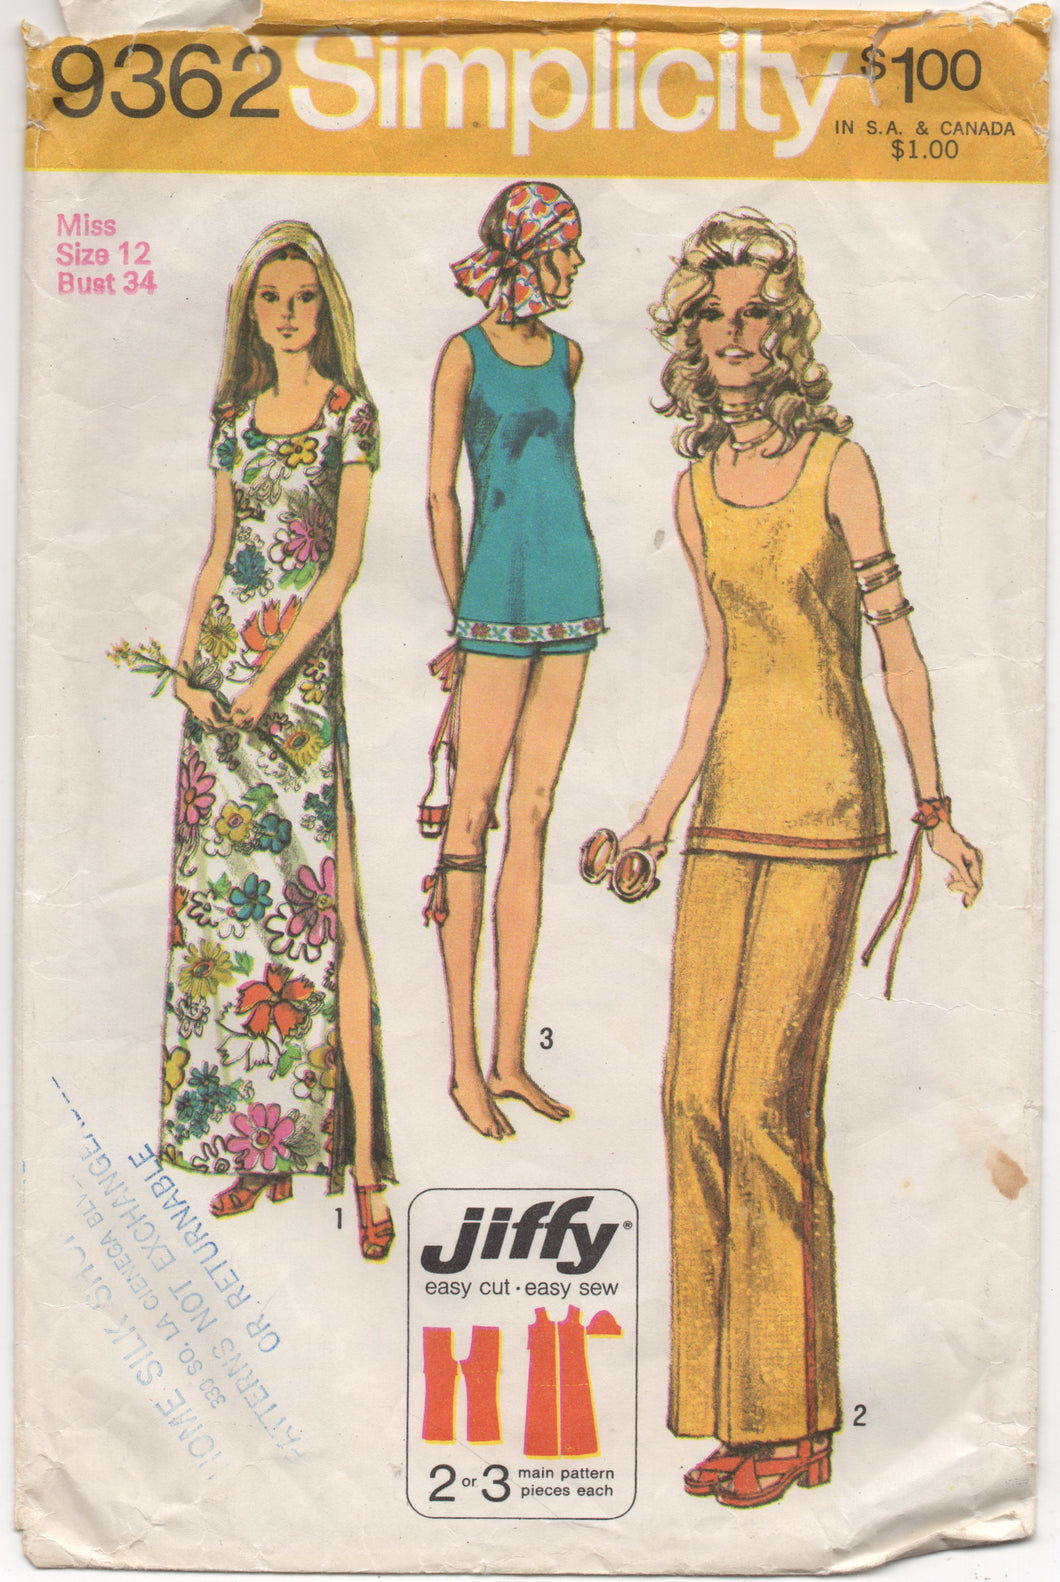 1970's Simplicity Dress with open sides, Tunic, Pants or Shorts Pattern - Bust 34